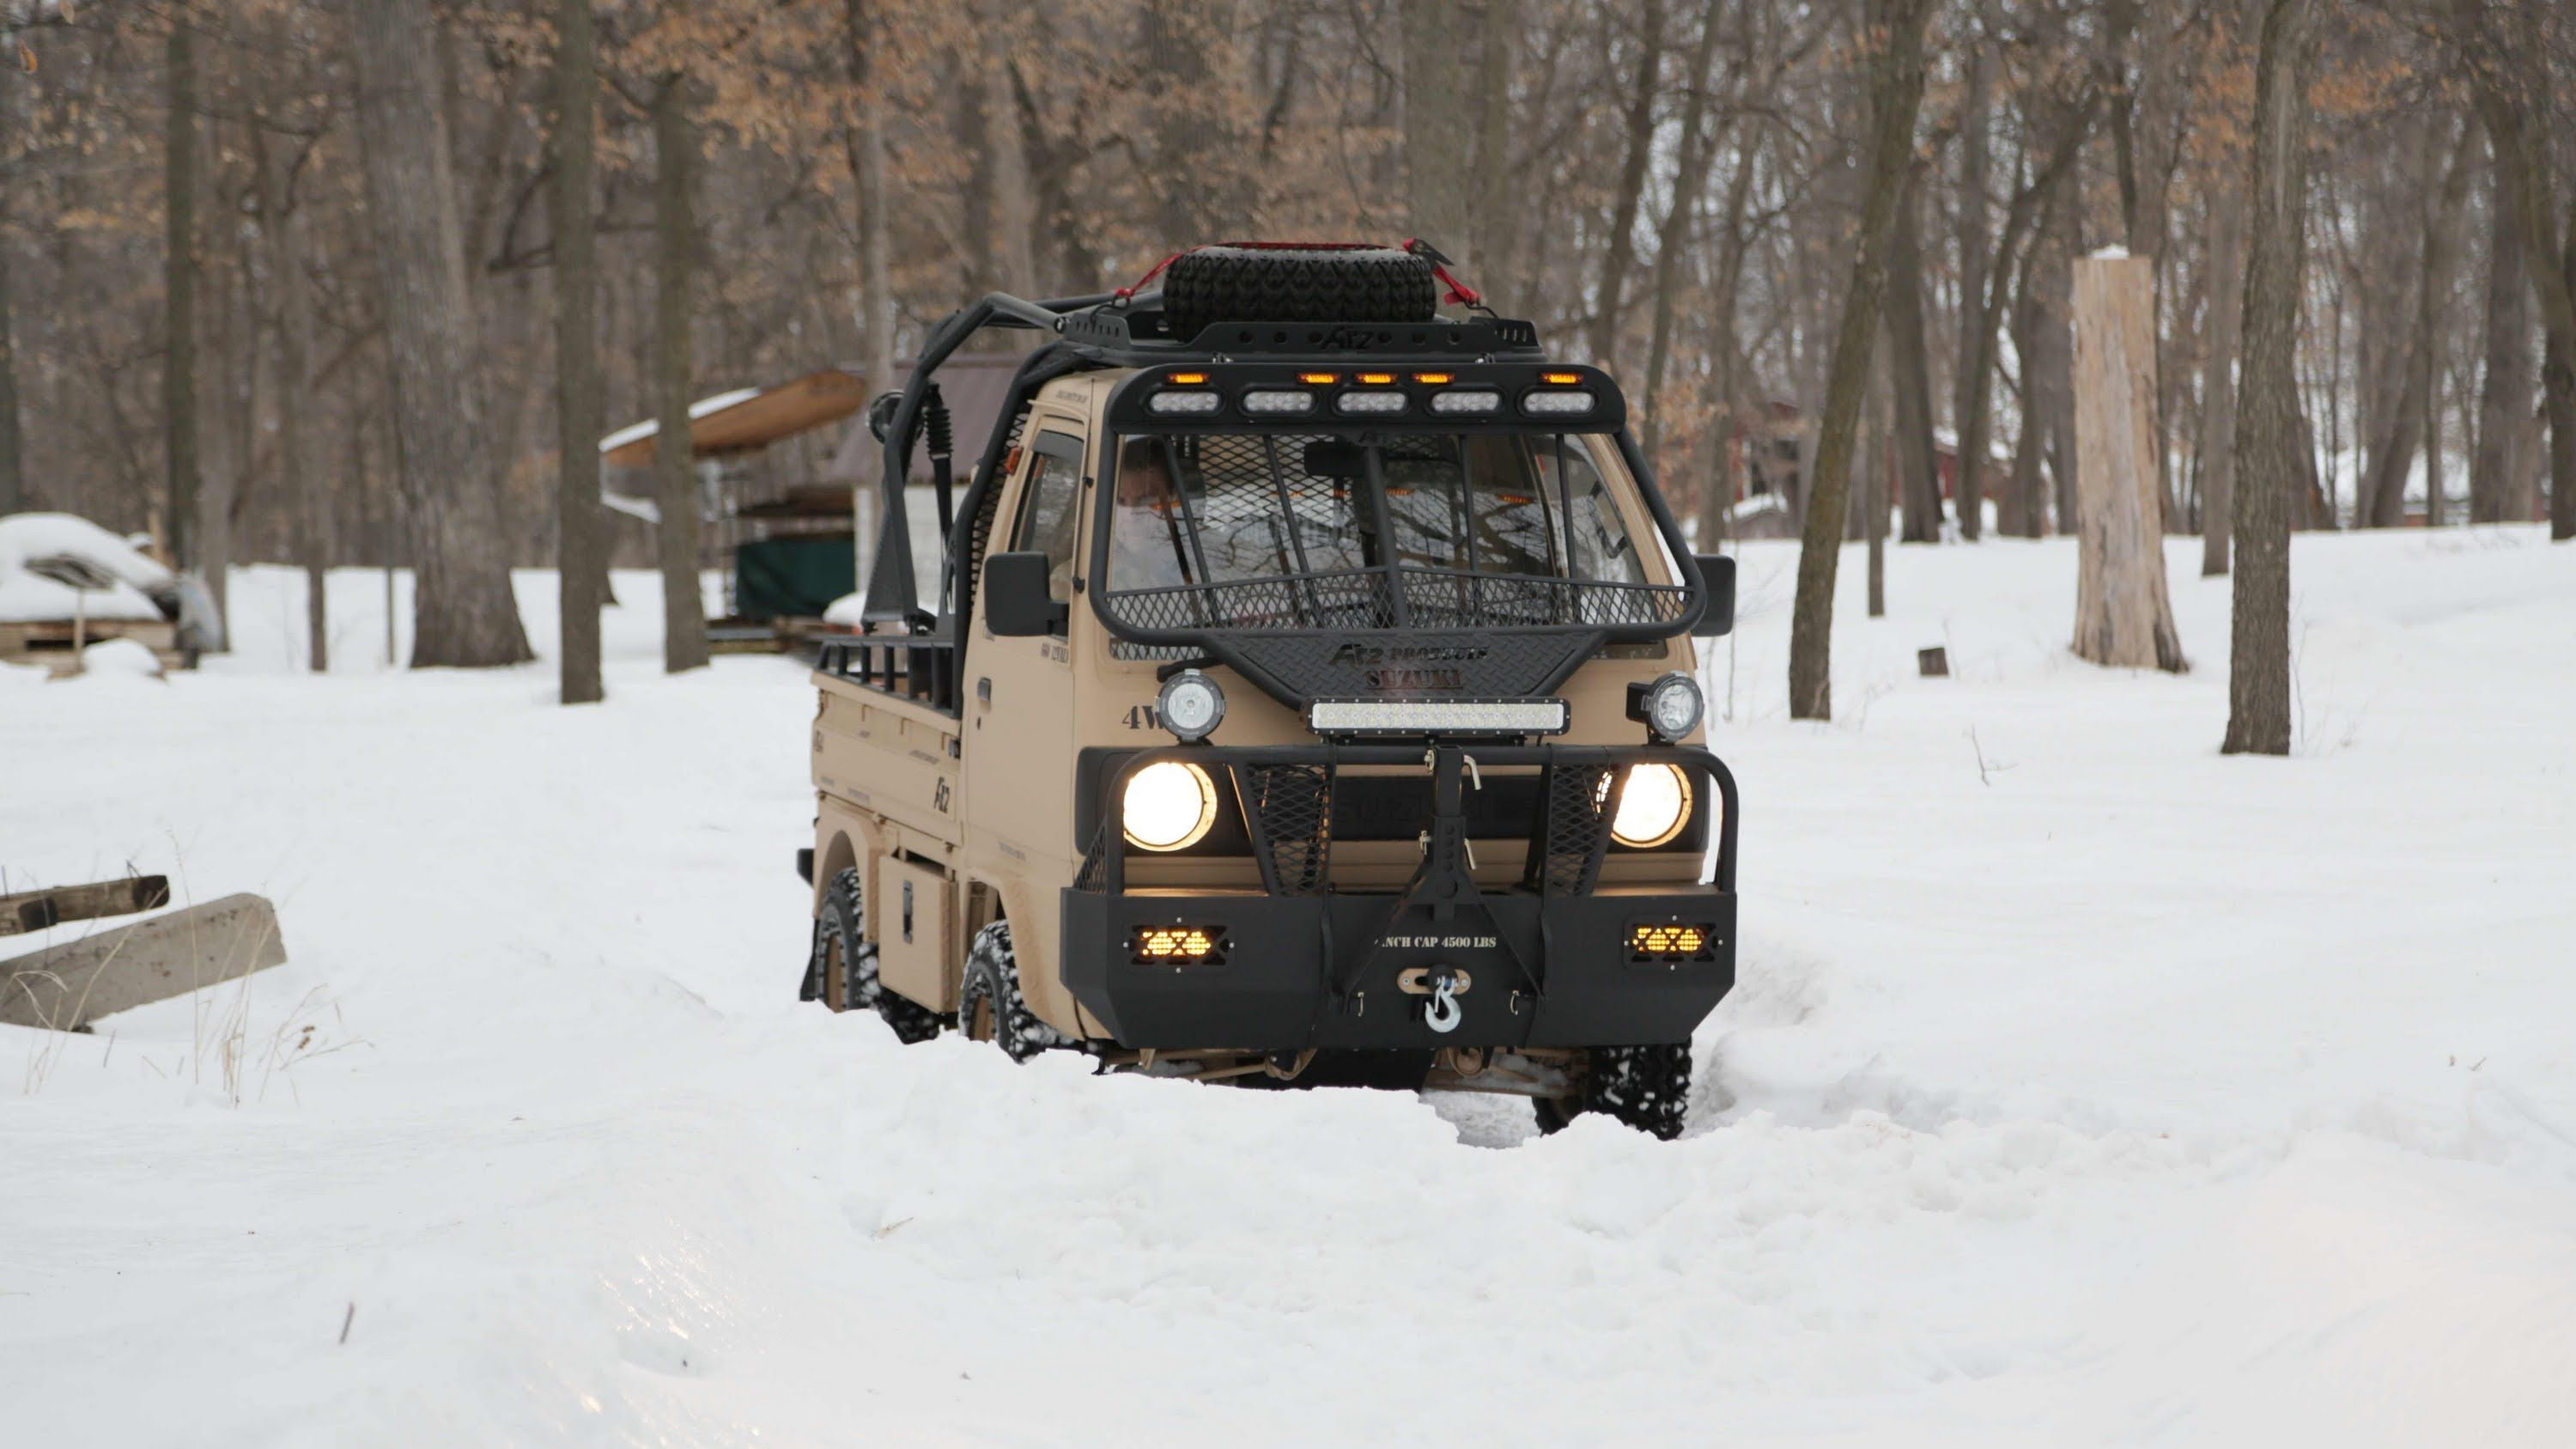 Canter truck sale double cabin 4wd japan import jpn car - Ai2 Products Ashwill Industries Suzuki Carry Off Road Adventure Vehicle